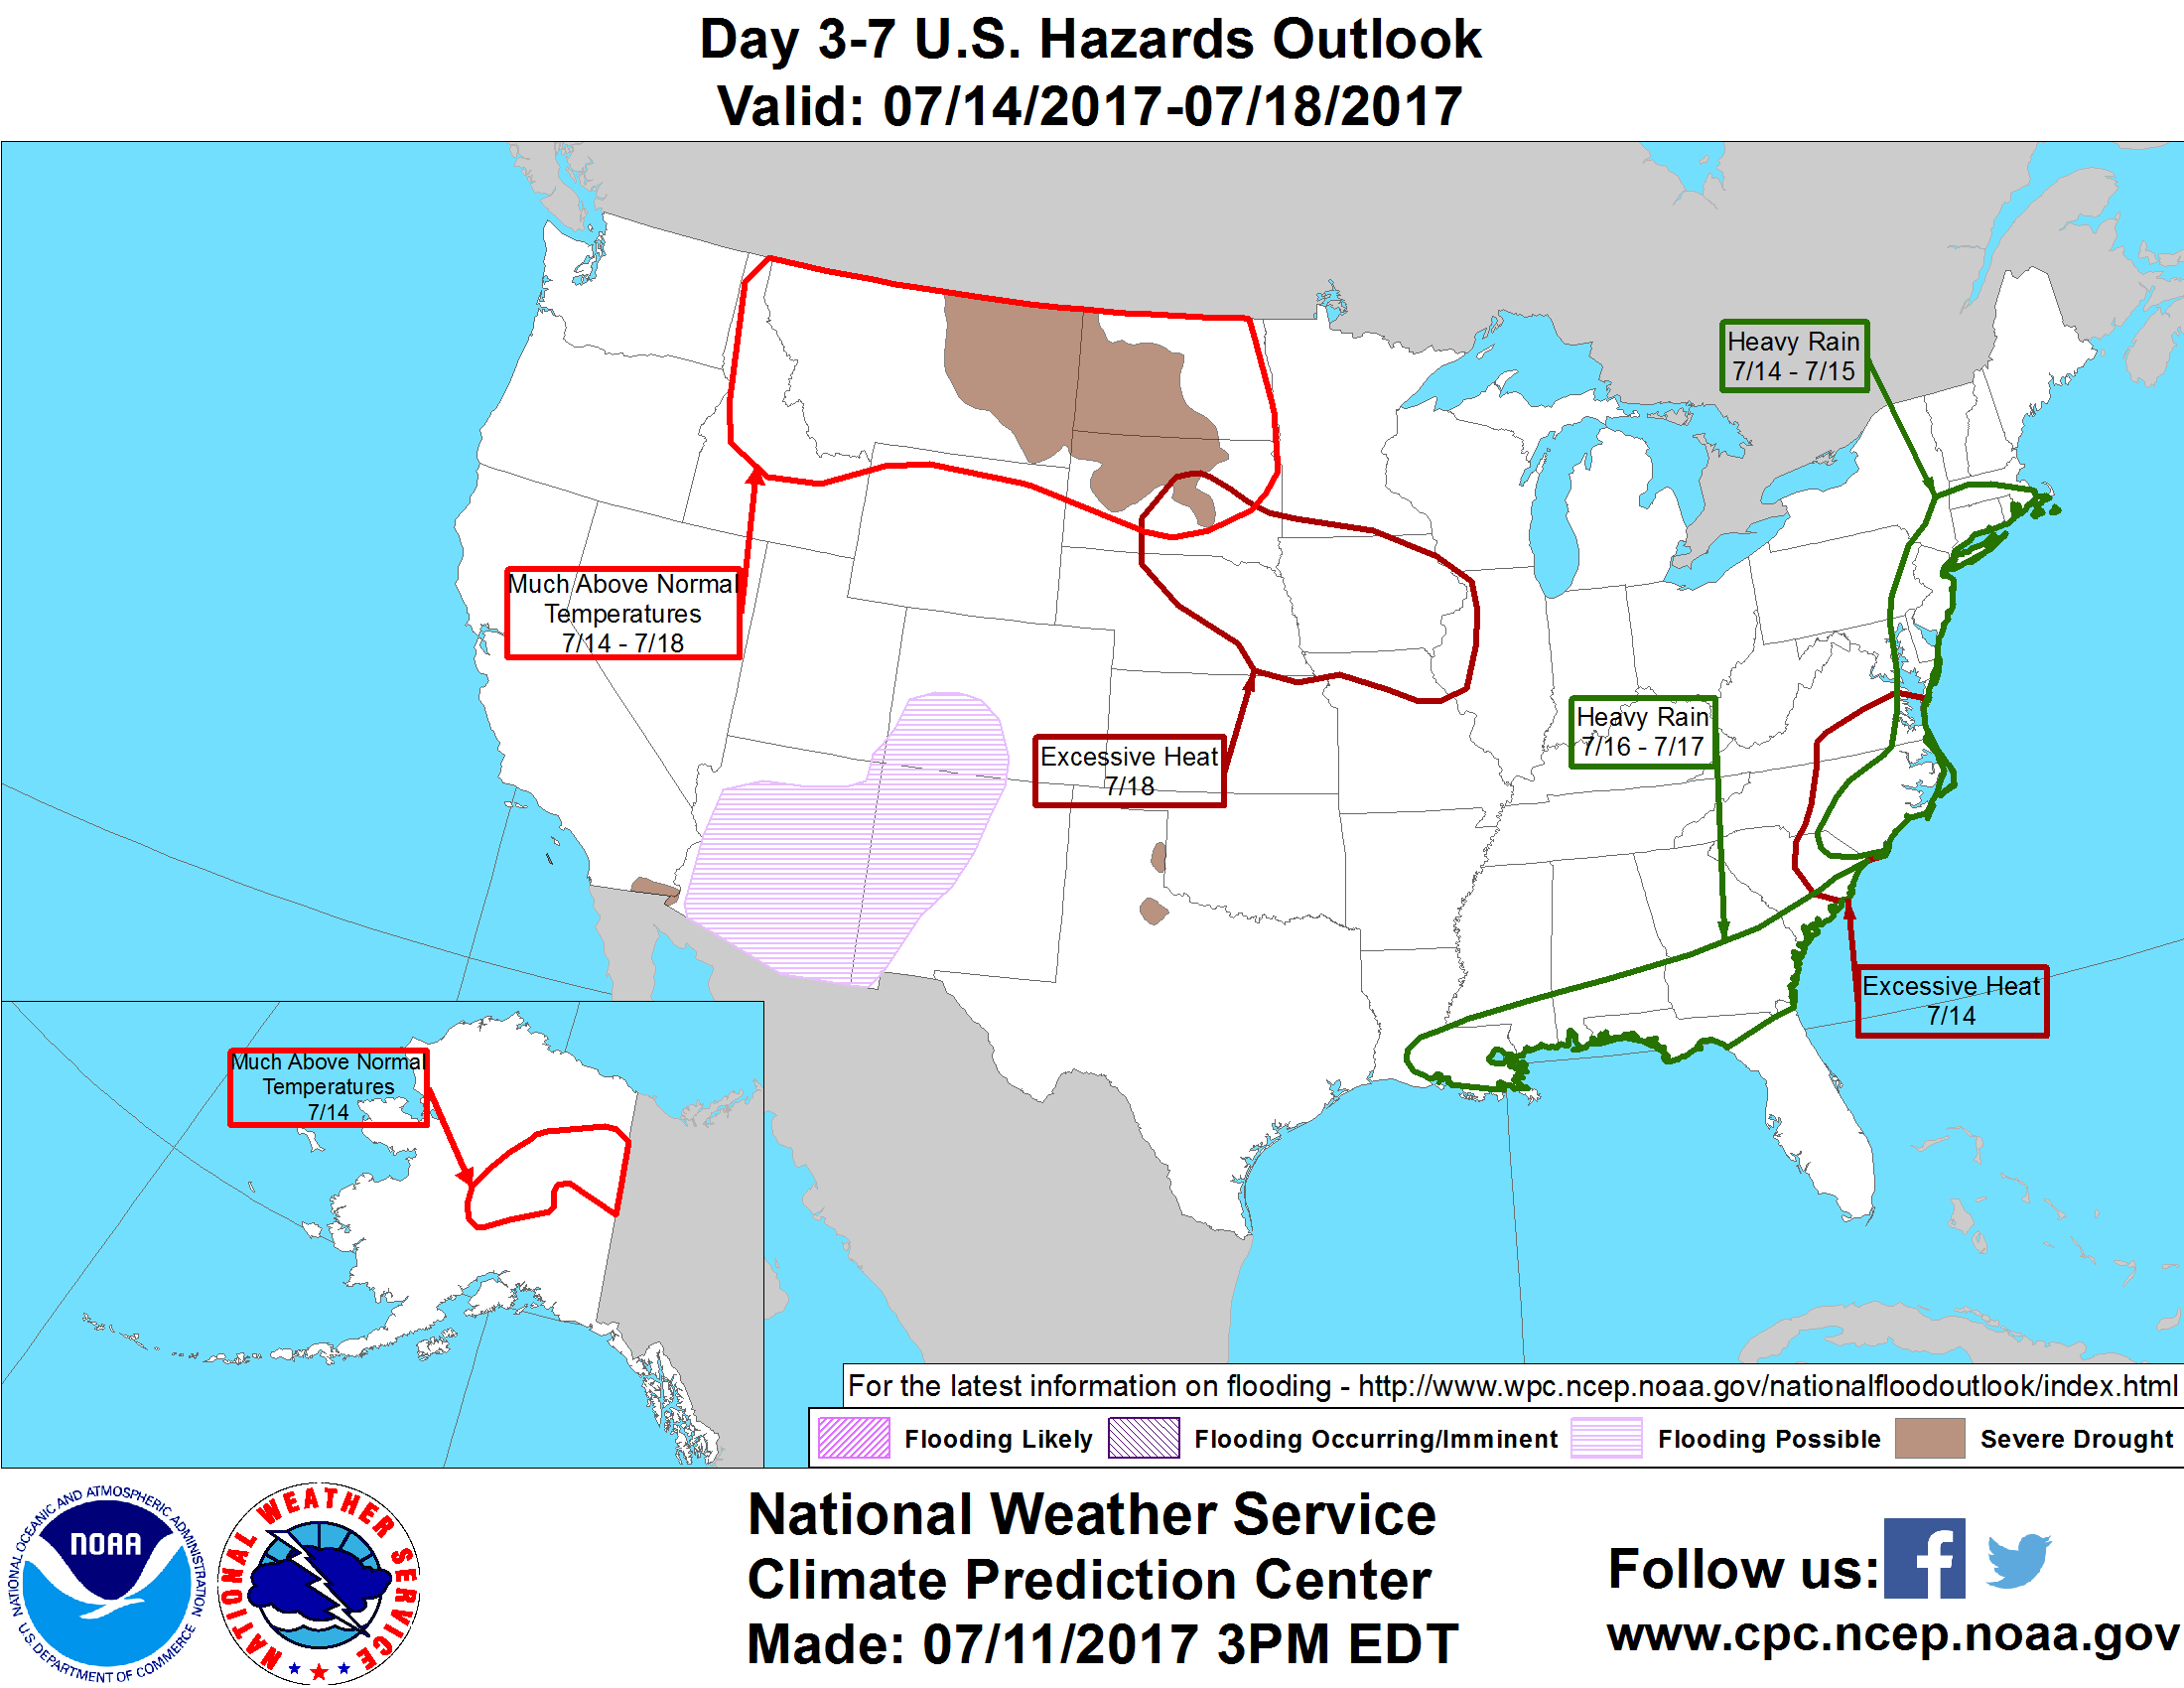 Slight Risk Of Much Above Normal Temperatures Extending From The Northern Rockies East To The Great Lakes Ohio Valley And Central Appalachians Wed Sun